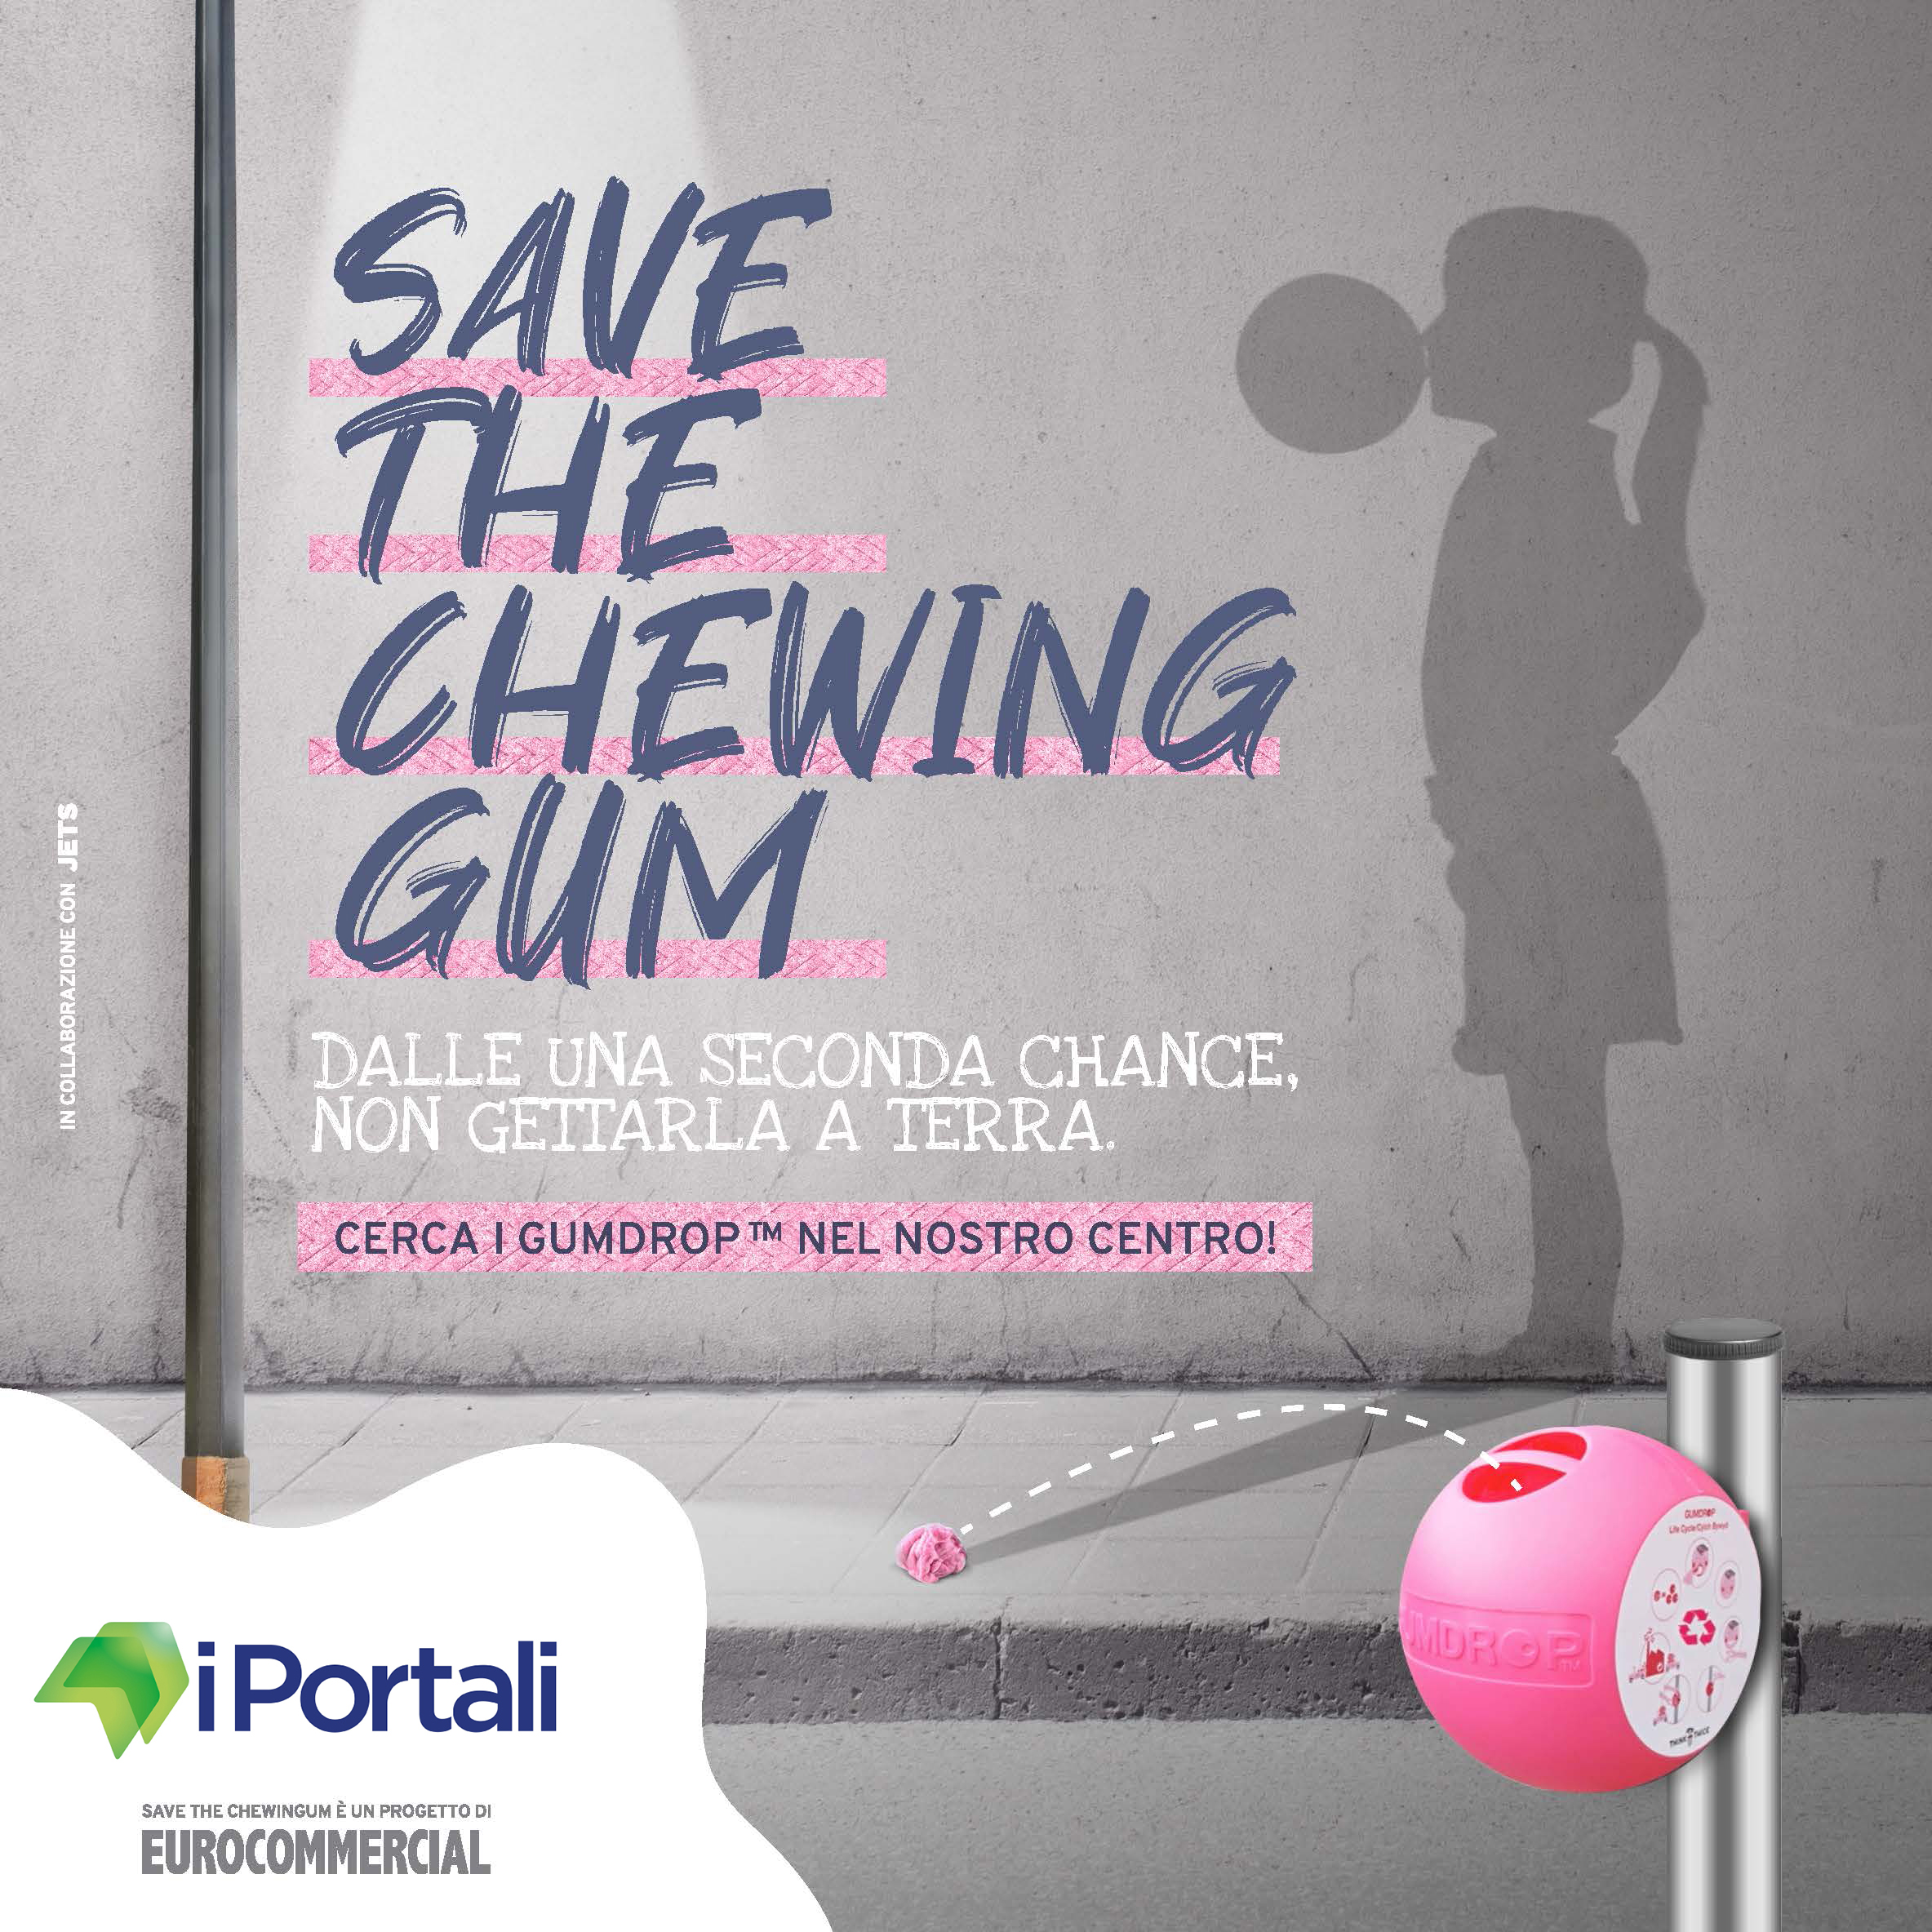 Save the chewing gum - Centro Commerciale I Portali Modena